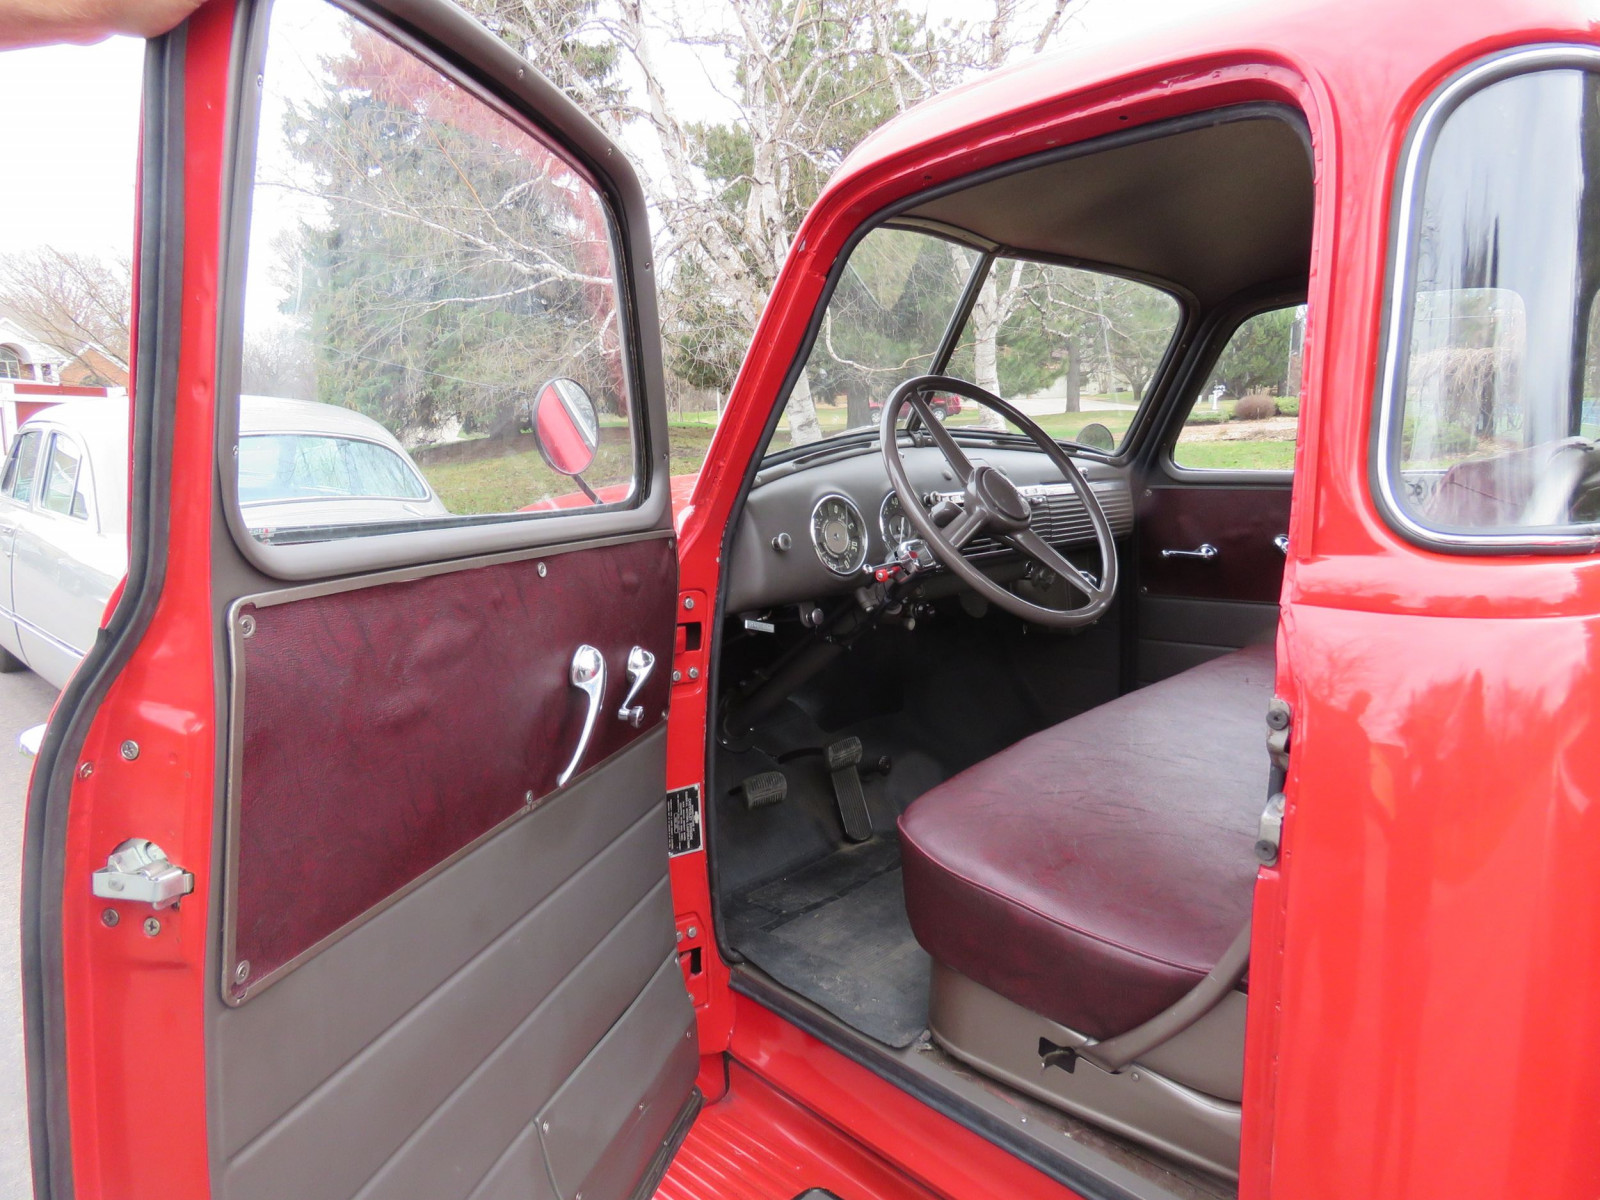 1950 Chevrolet 3100 5 window Pickup - Image 10